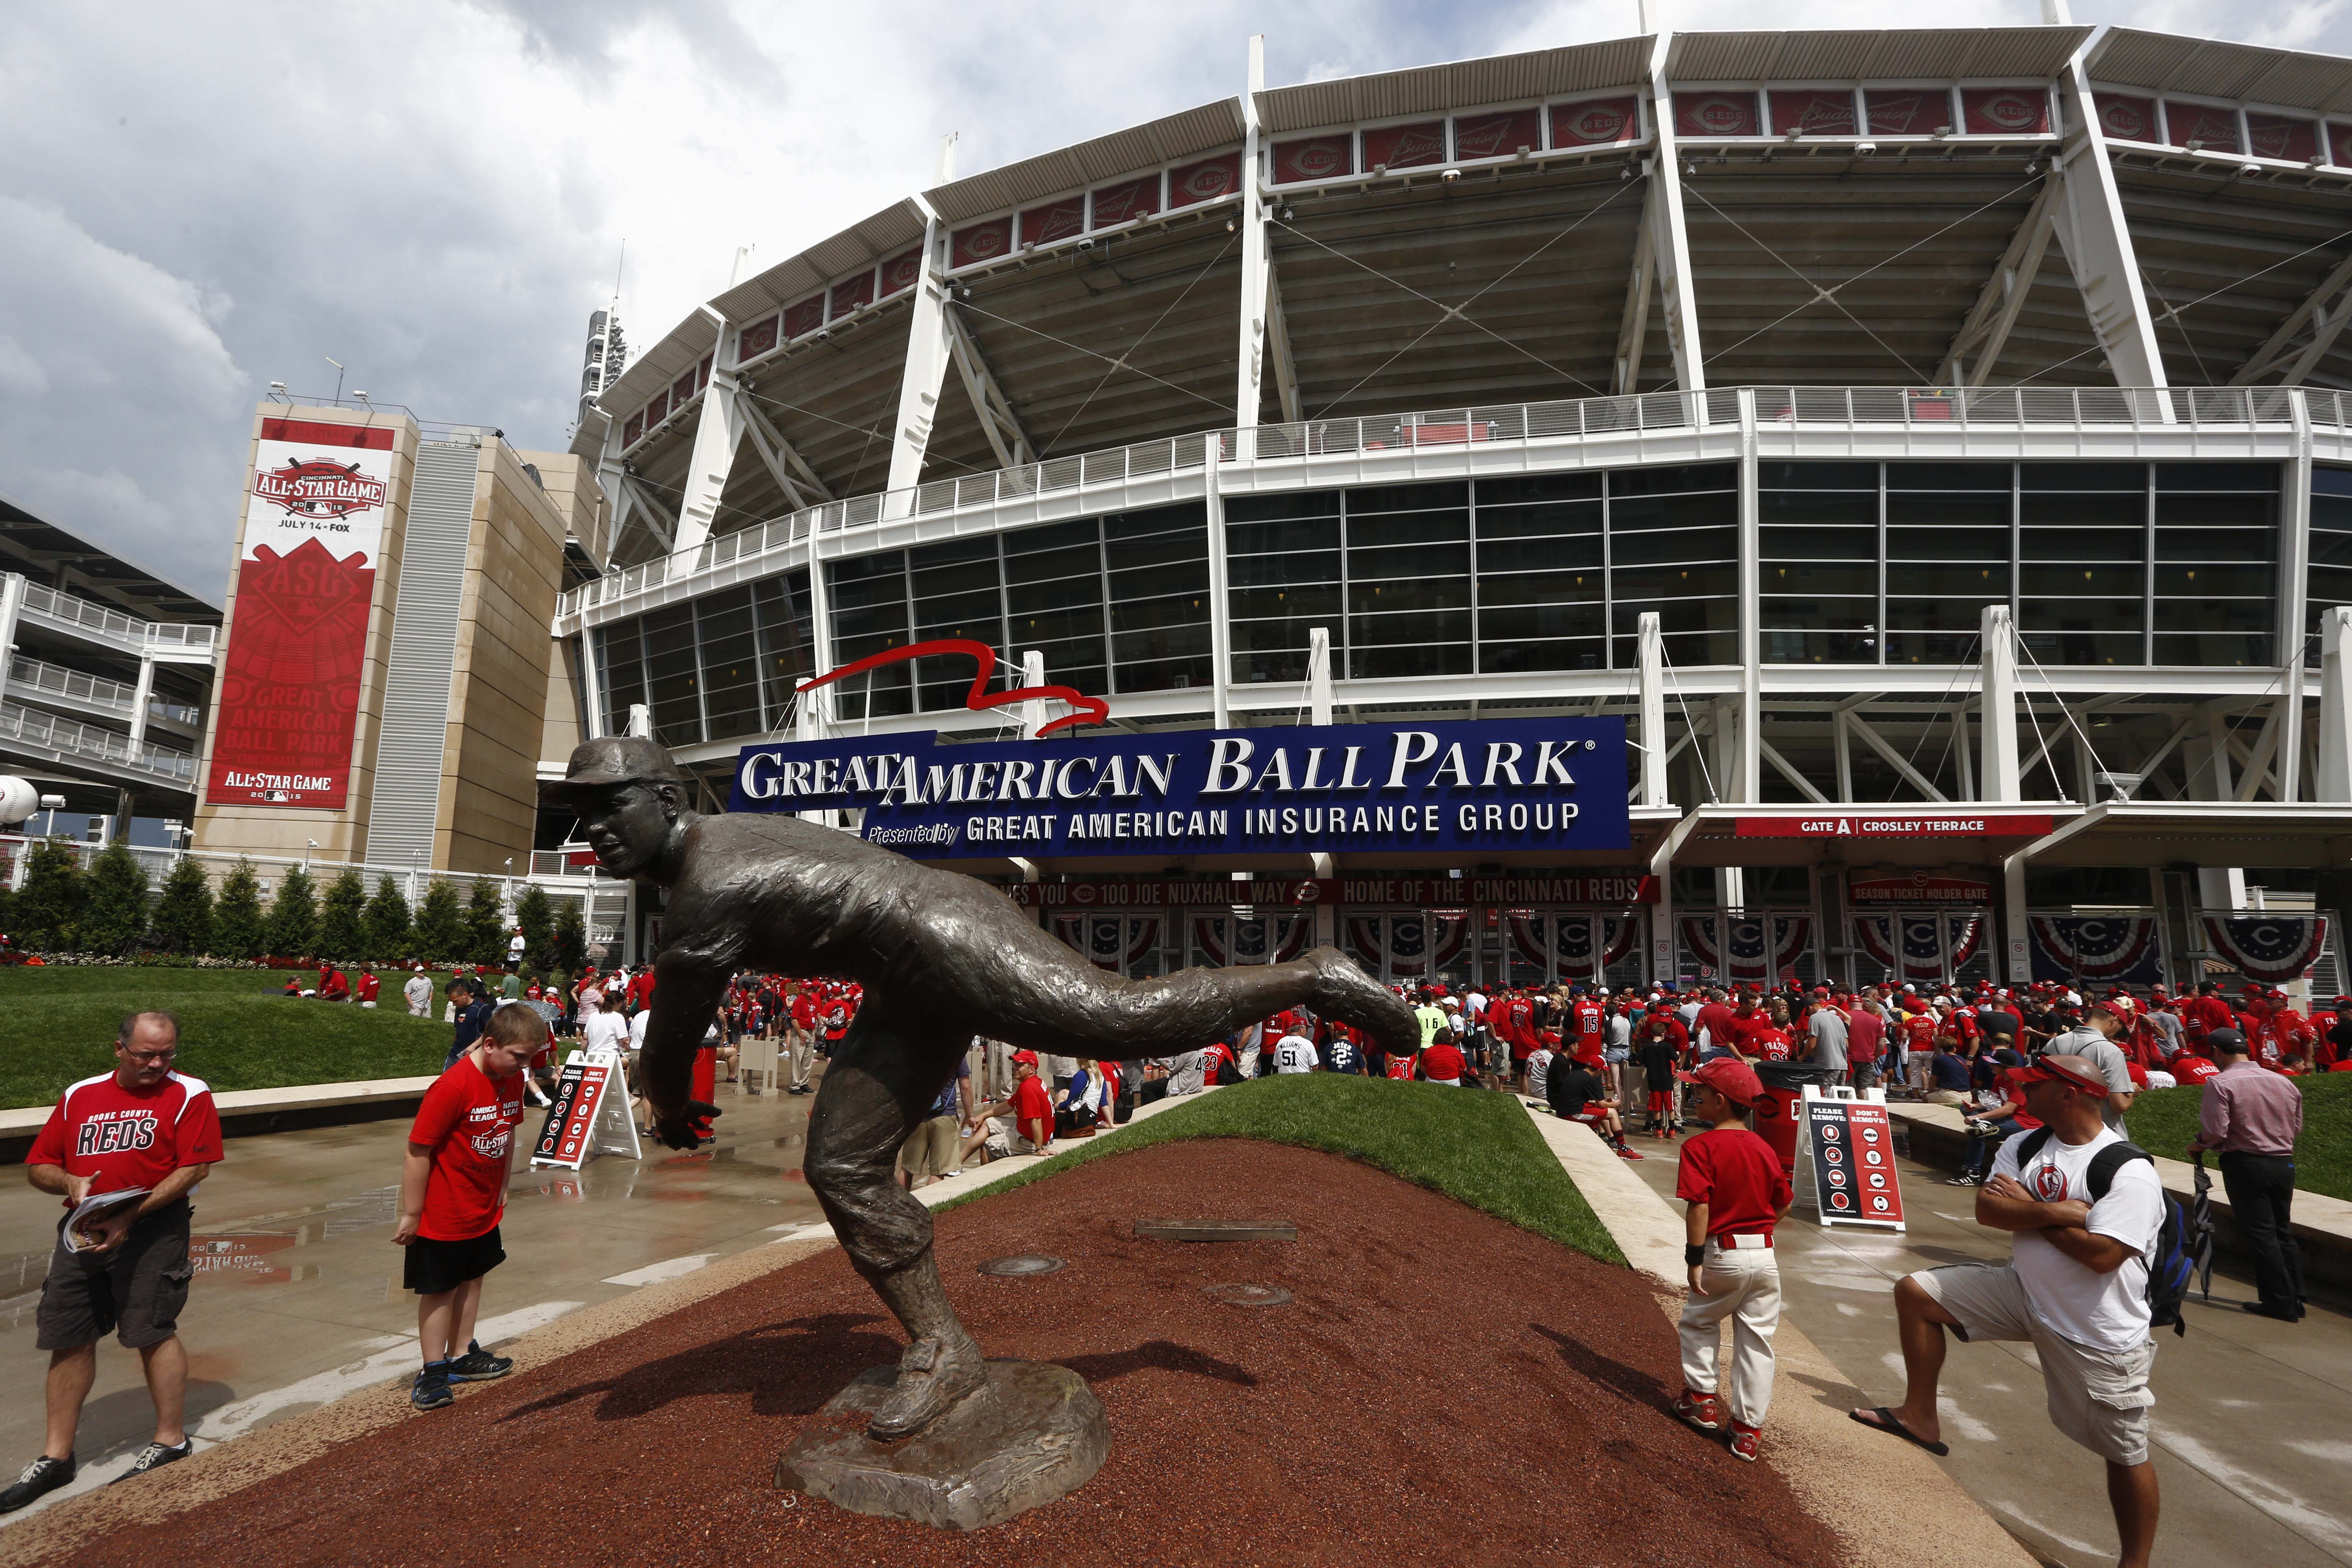 Jul 14, 2015; Cincinnati, OH, USA; General view outside of Great American Ball Park prior to the 2015 MLB All Star Game. Mandatory Credit: David Kohl-USA TODAY Sports